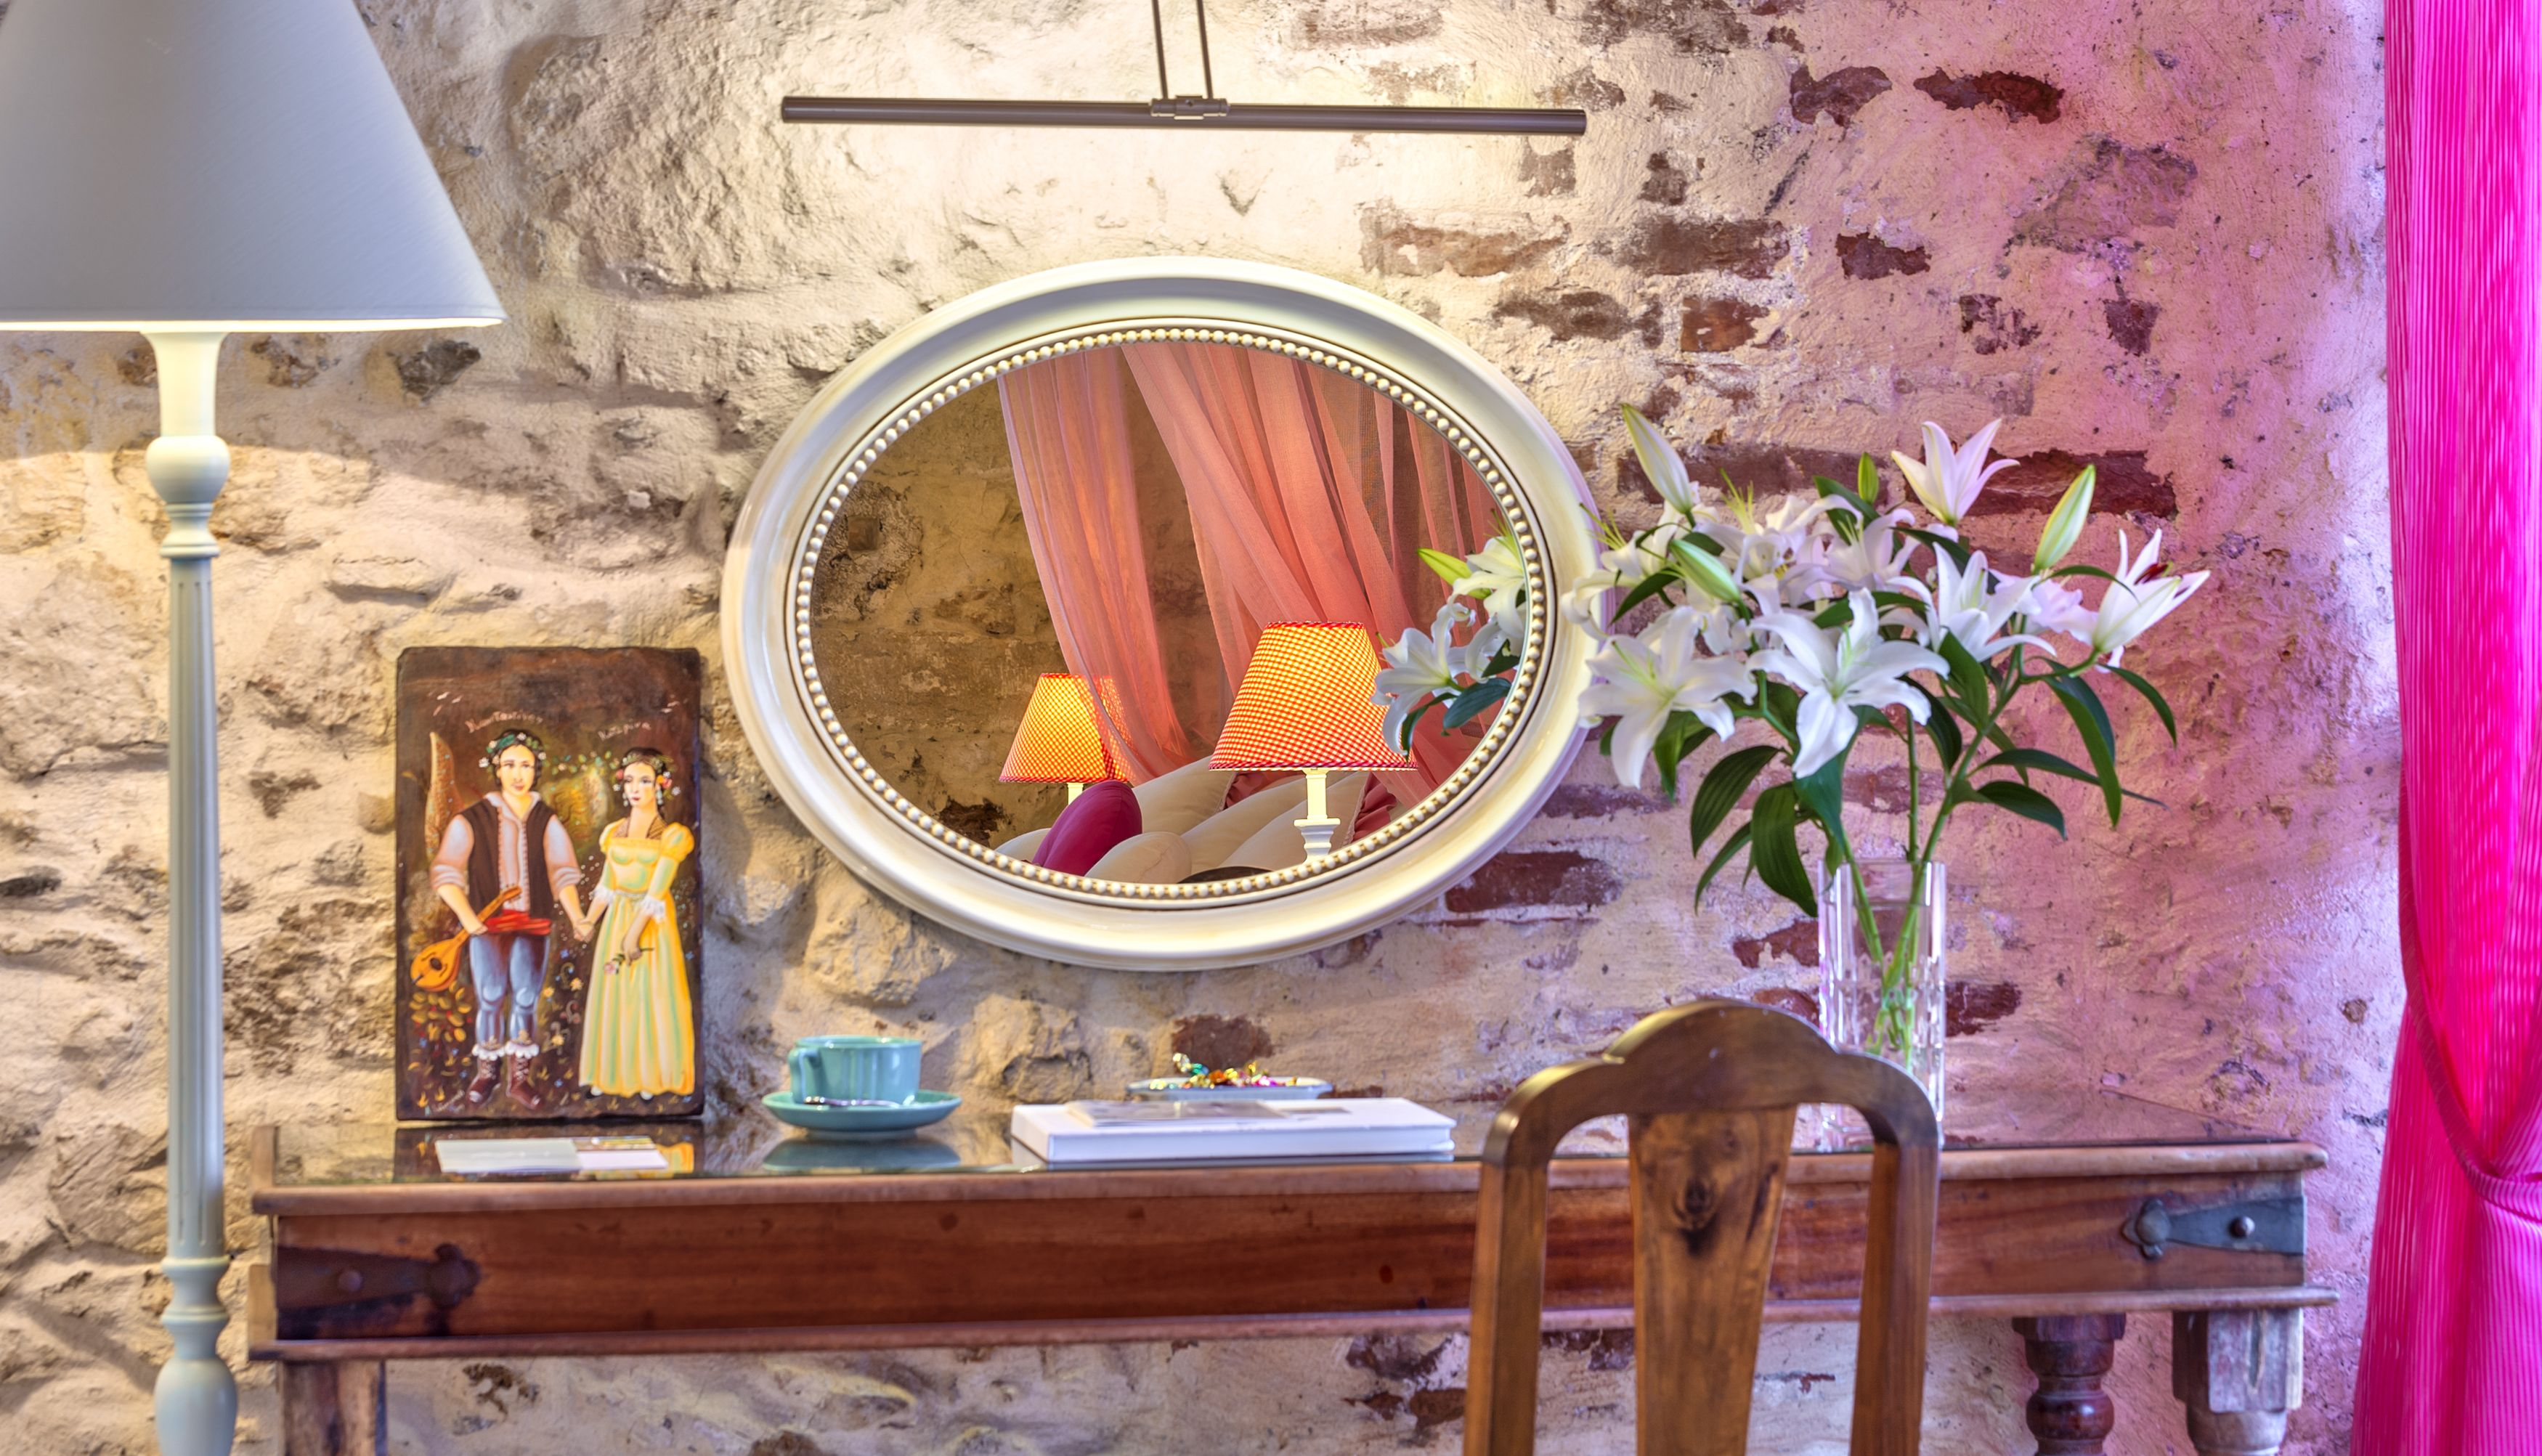 www.avli.gr - Old Town Of Rethymno - Crete Boutique Hotel!